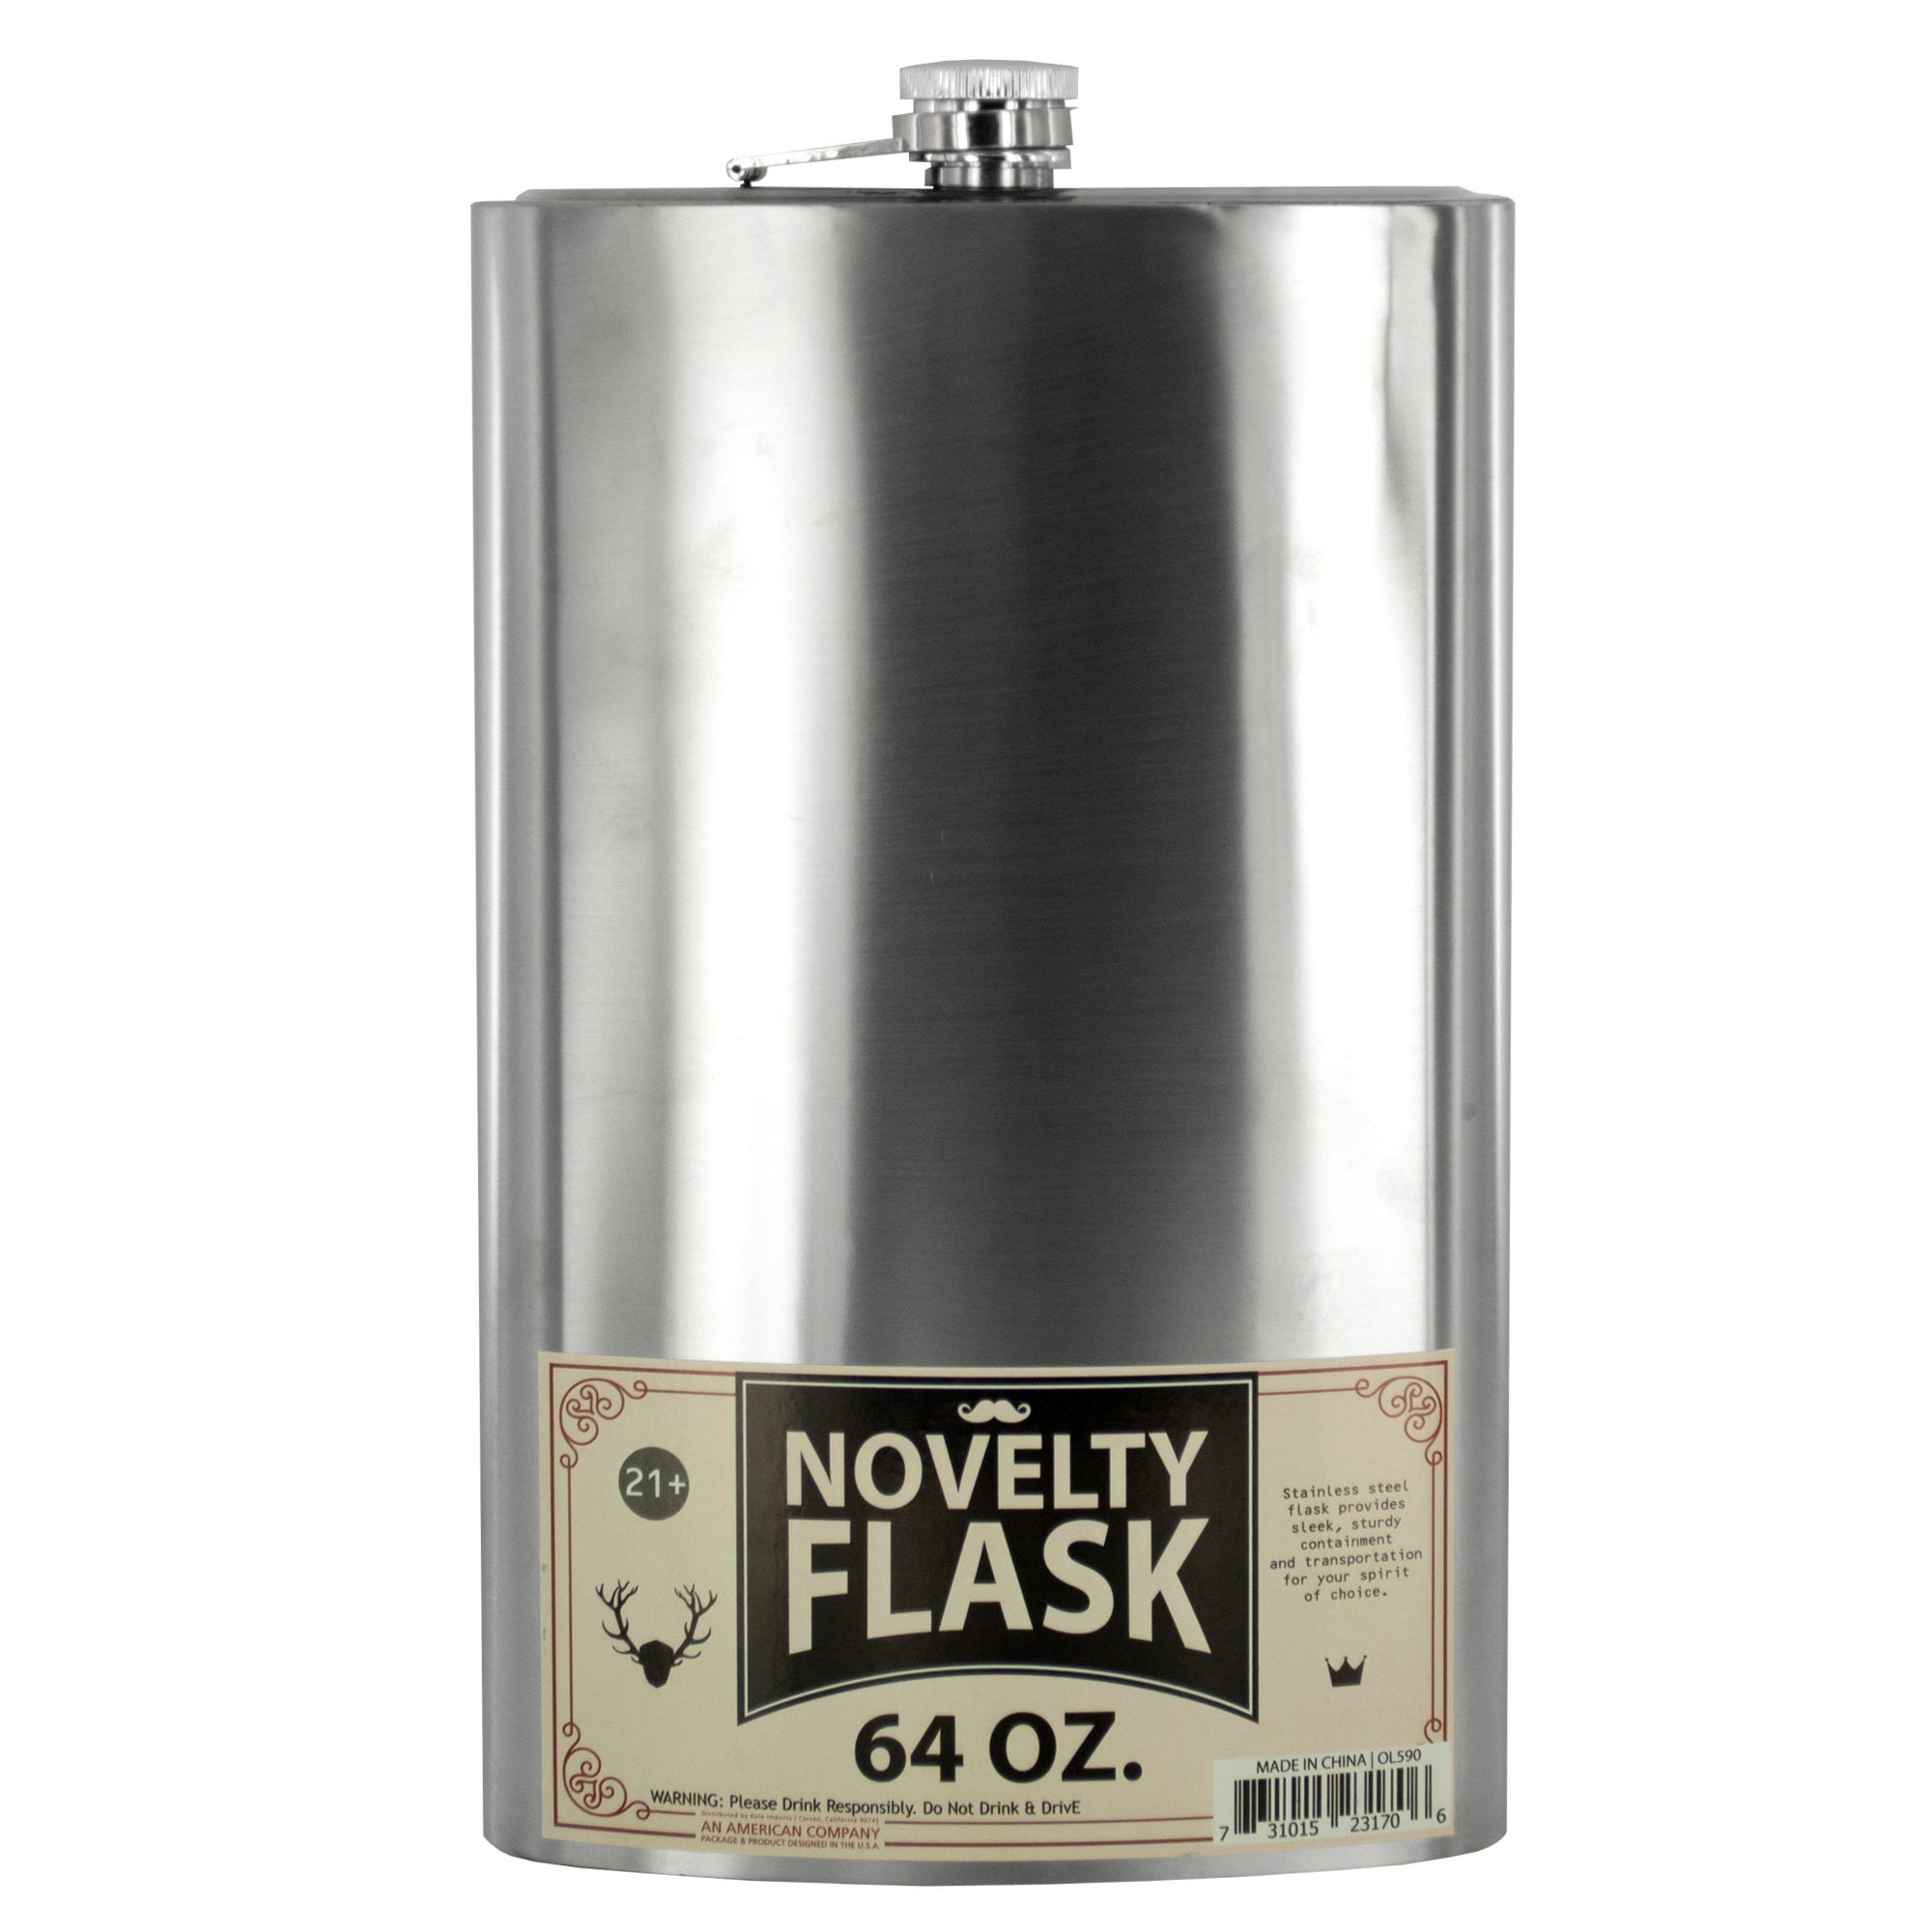 64 oz. Oversized Stainless Steel Novelty Flask- Qty 4